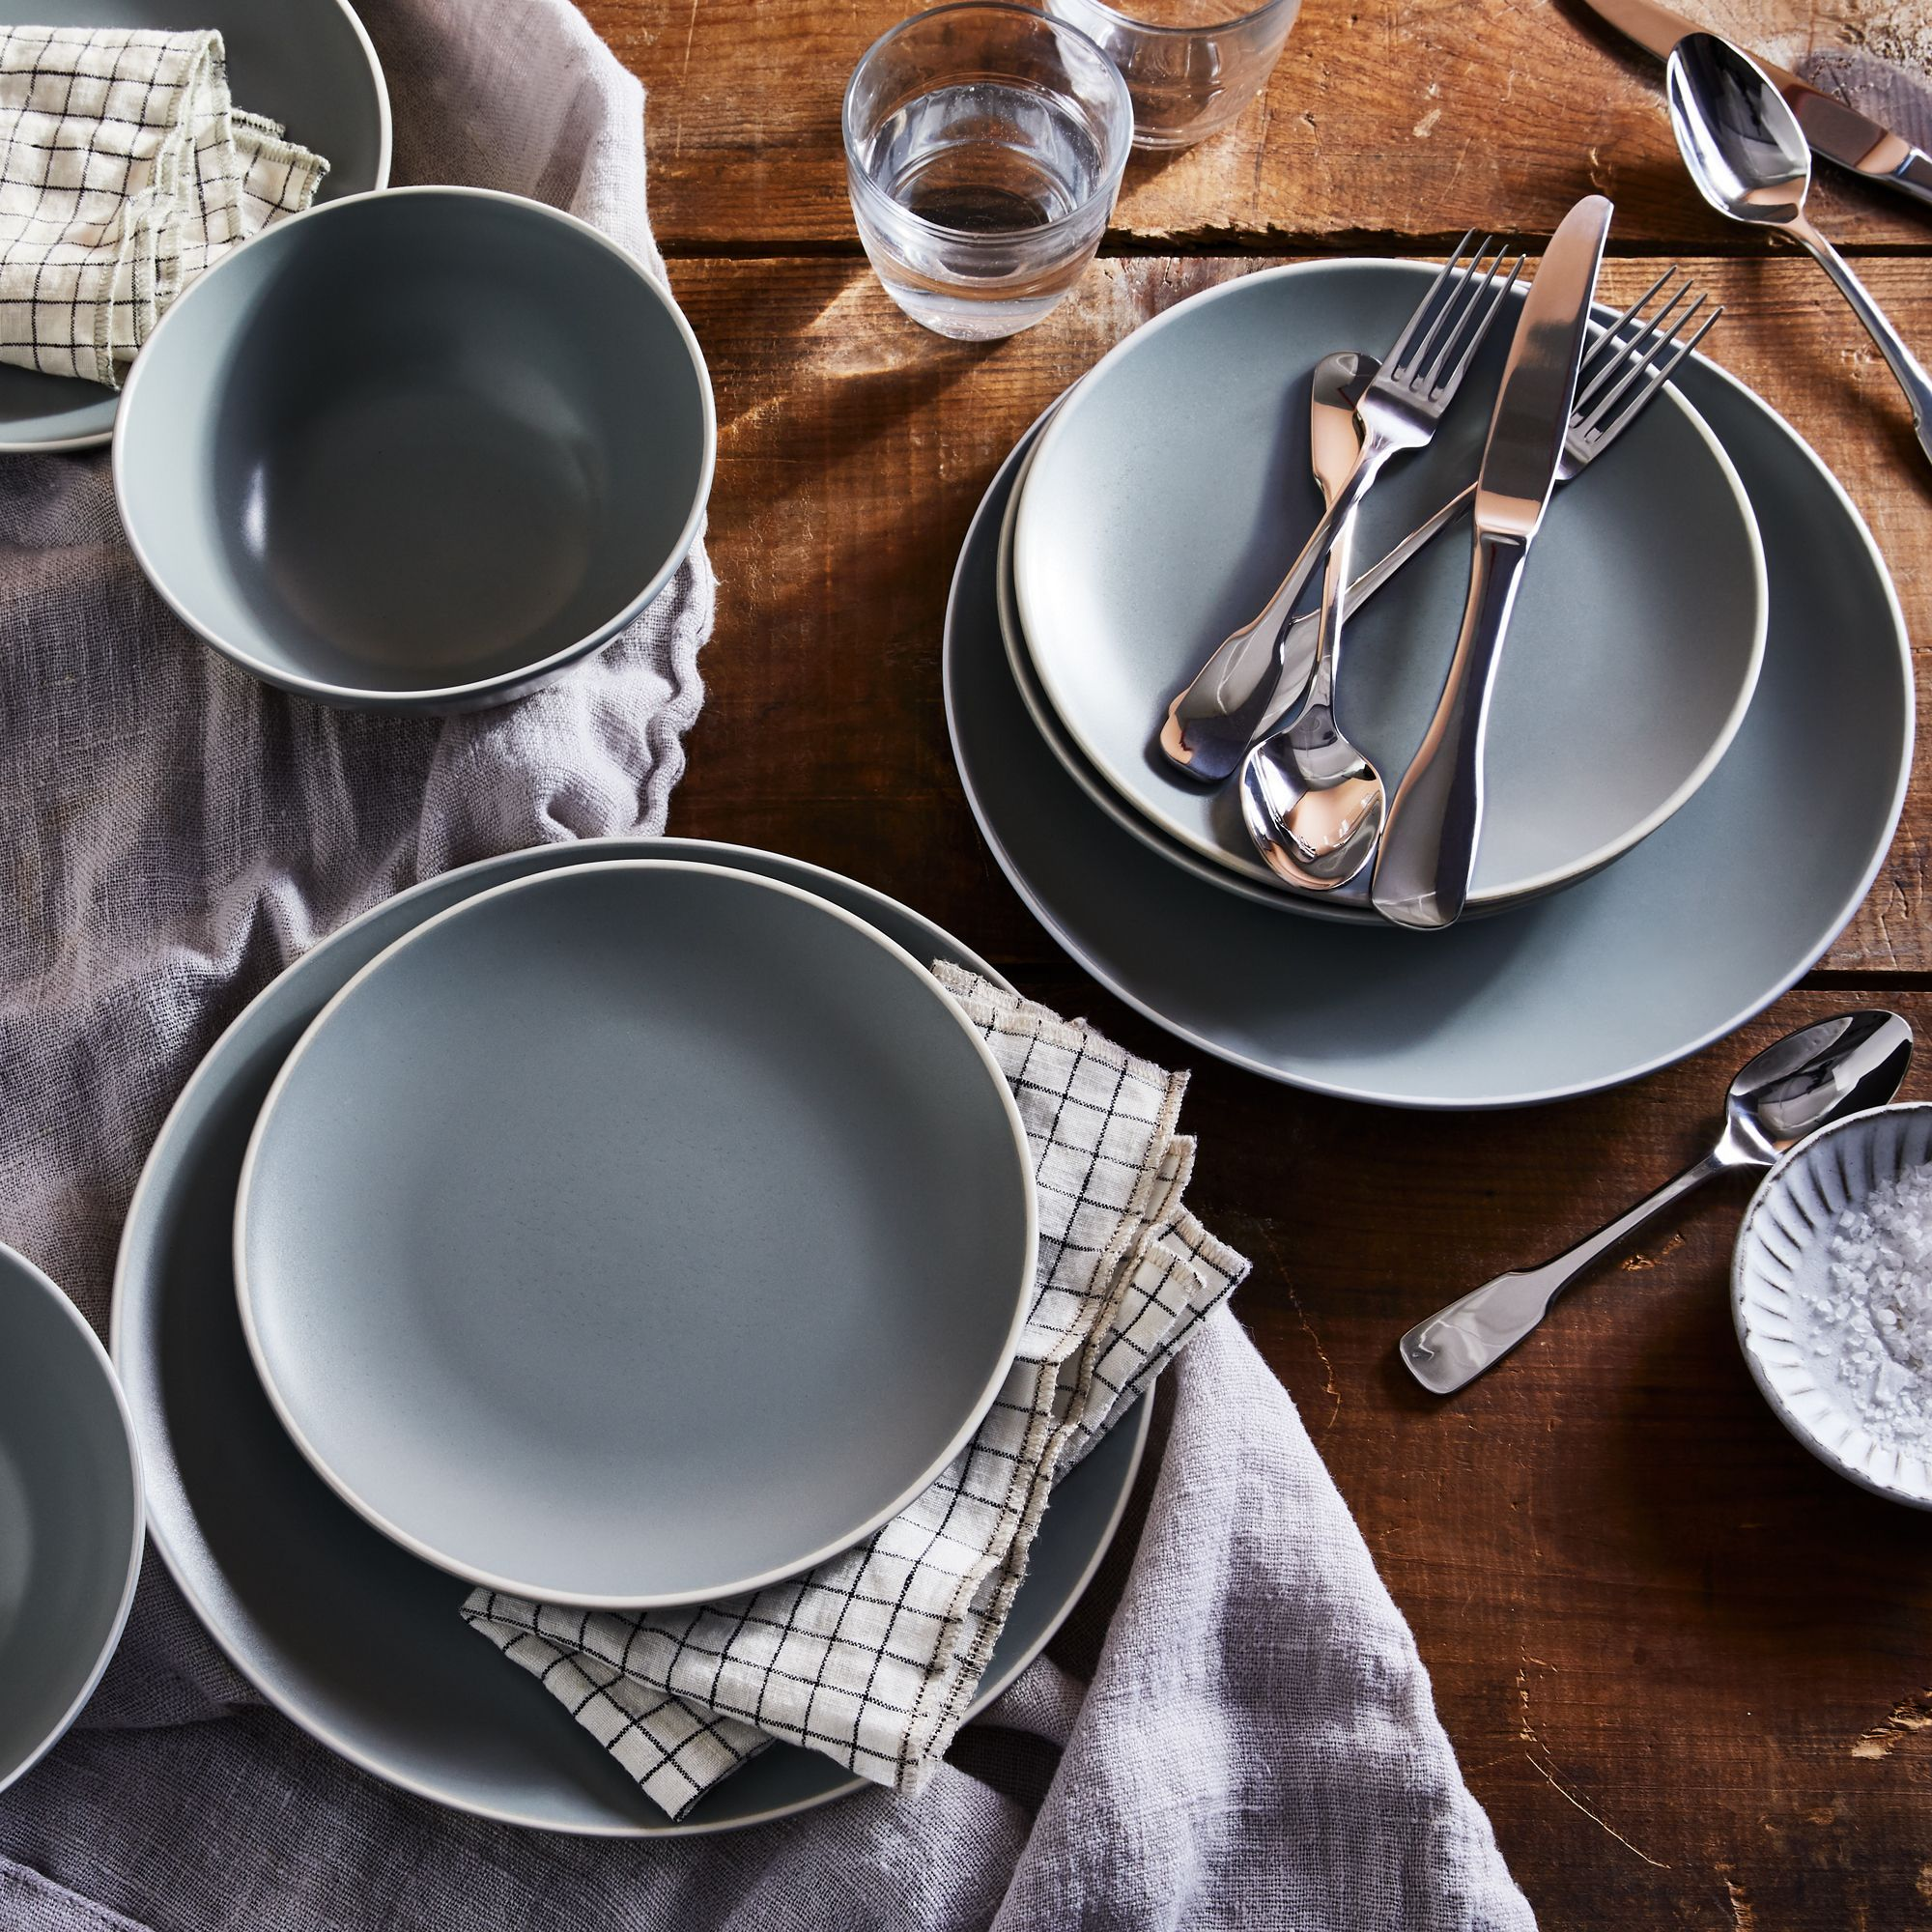 Classic Stoneware Dinnerware Best Affordable Dinnerware Set For Everyday Use Stoneware Dinnerware Dinnerware Dinnerware Set